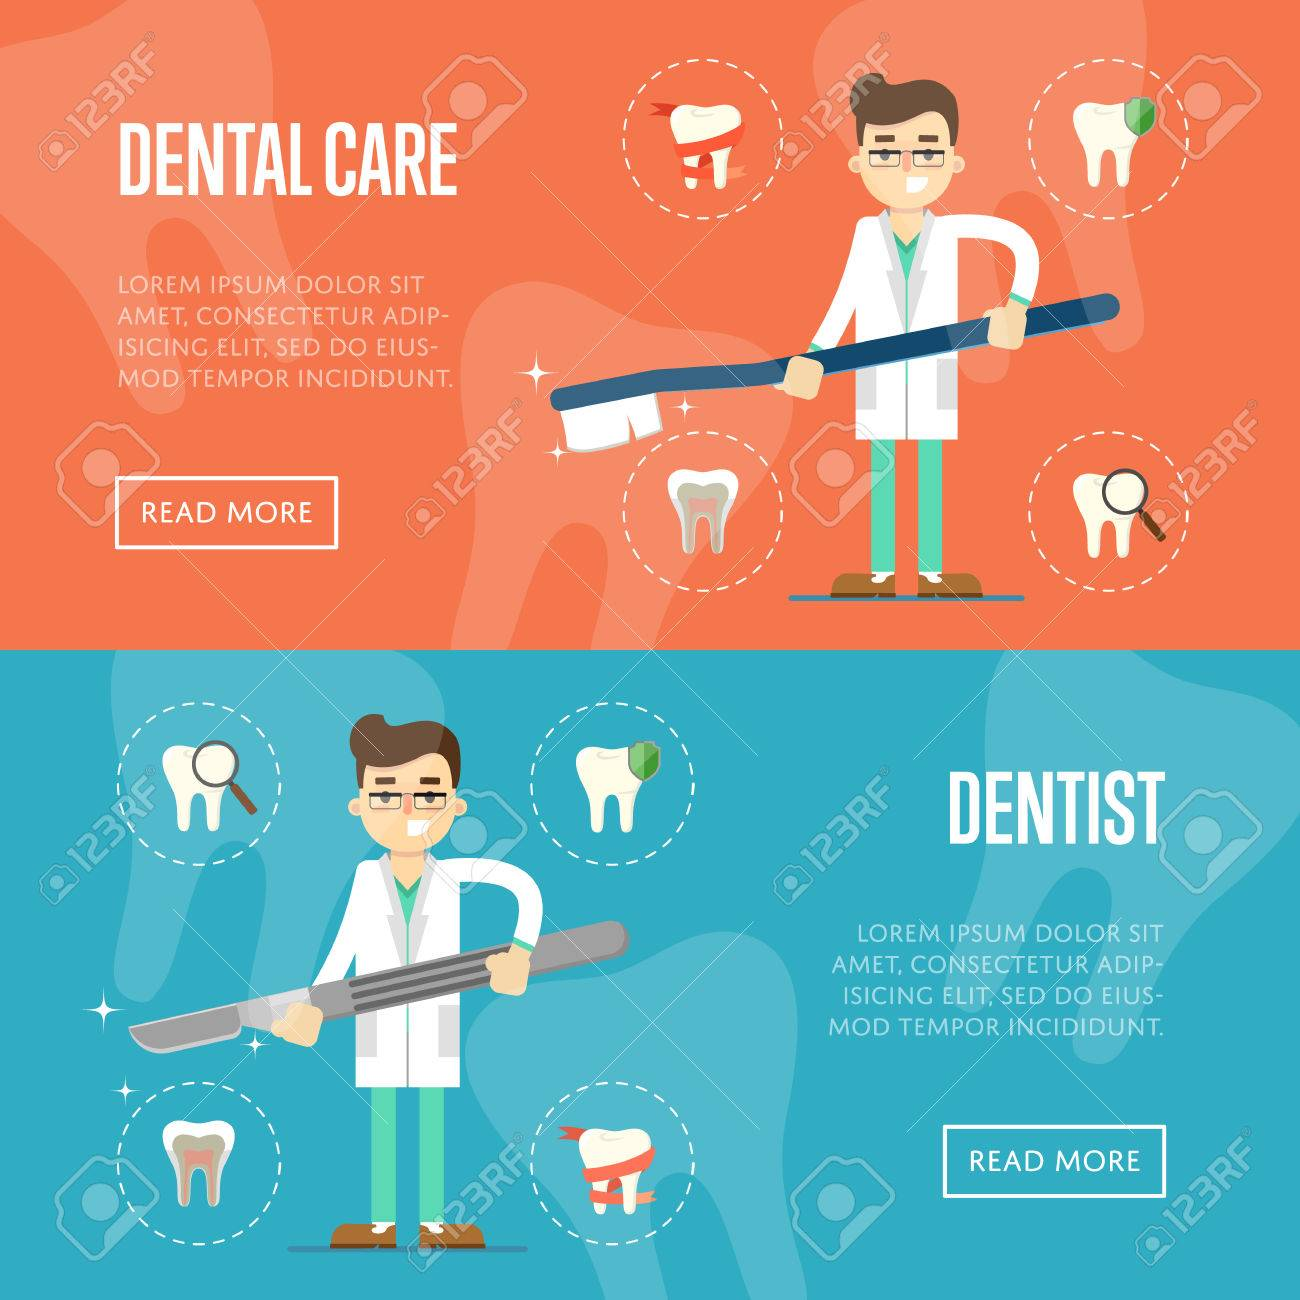 Dental Website Templates With Male Cartoon Dentist Holding Big